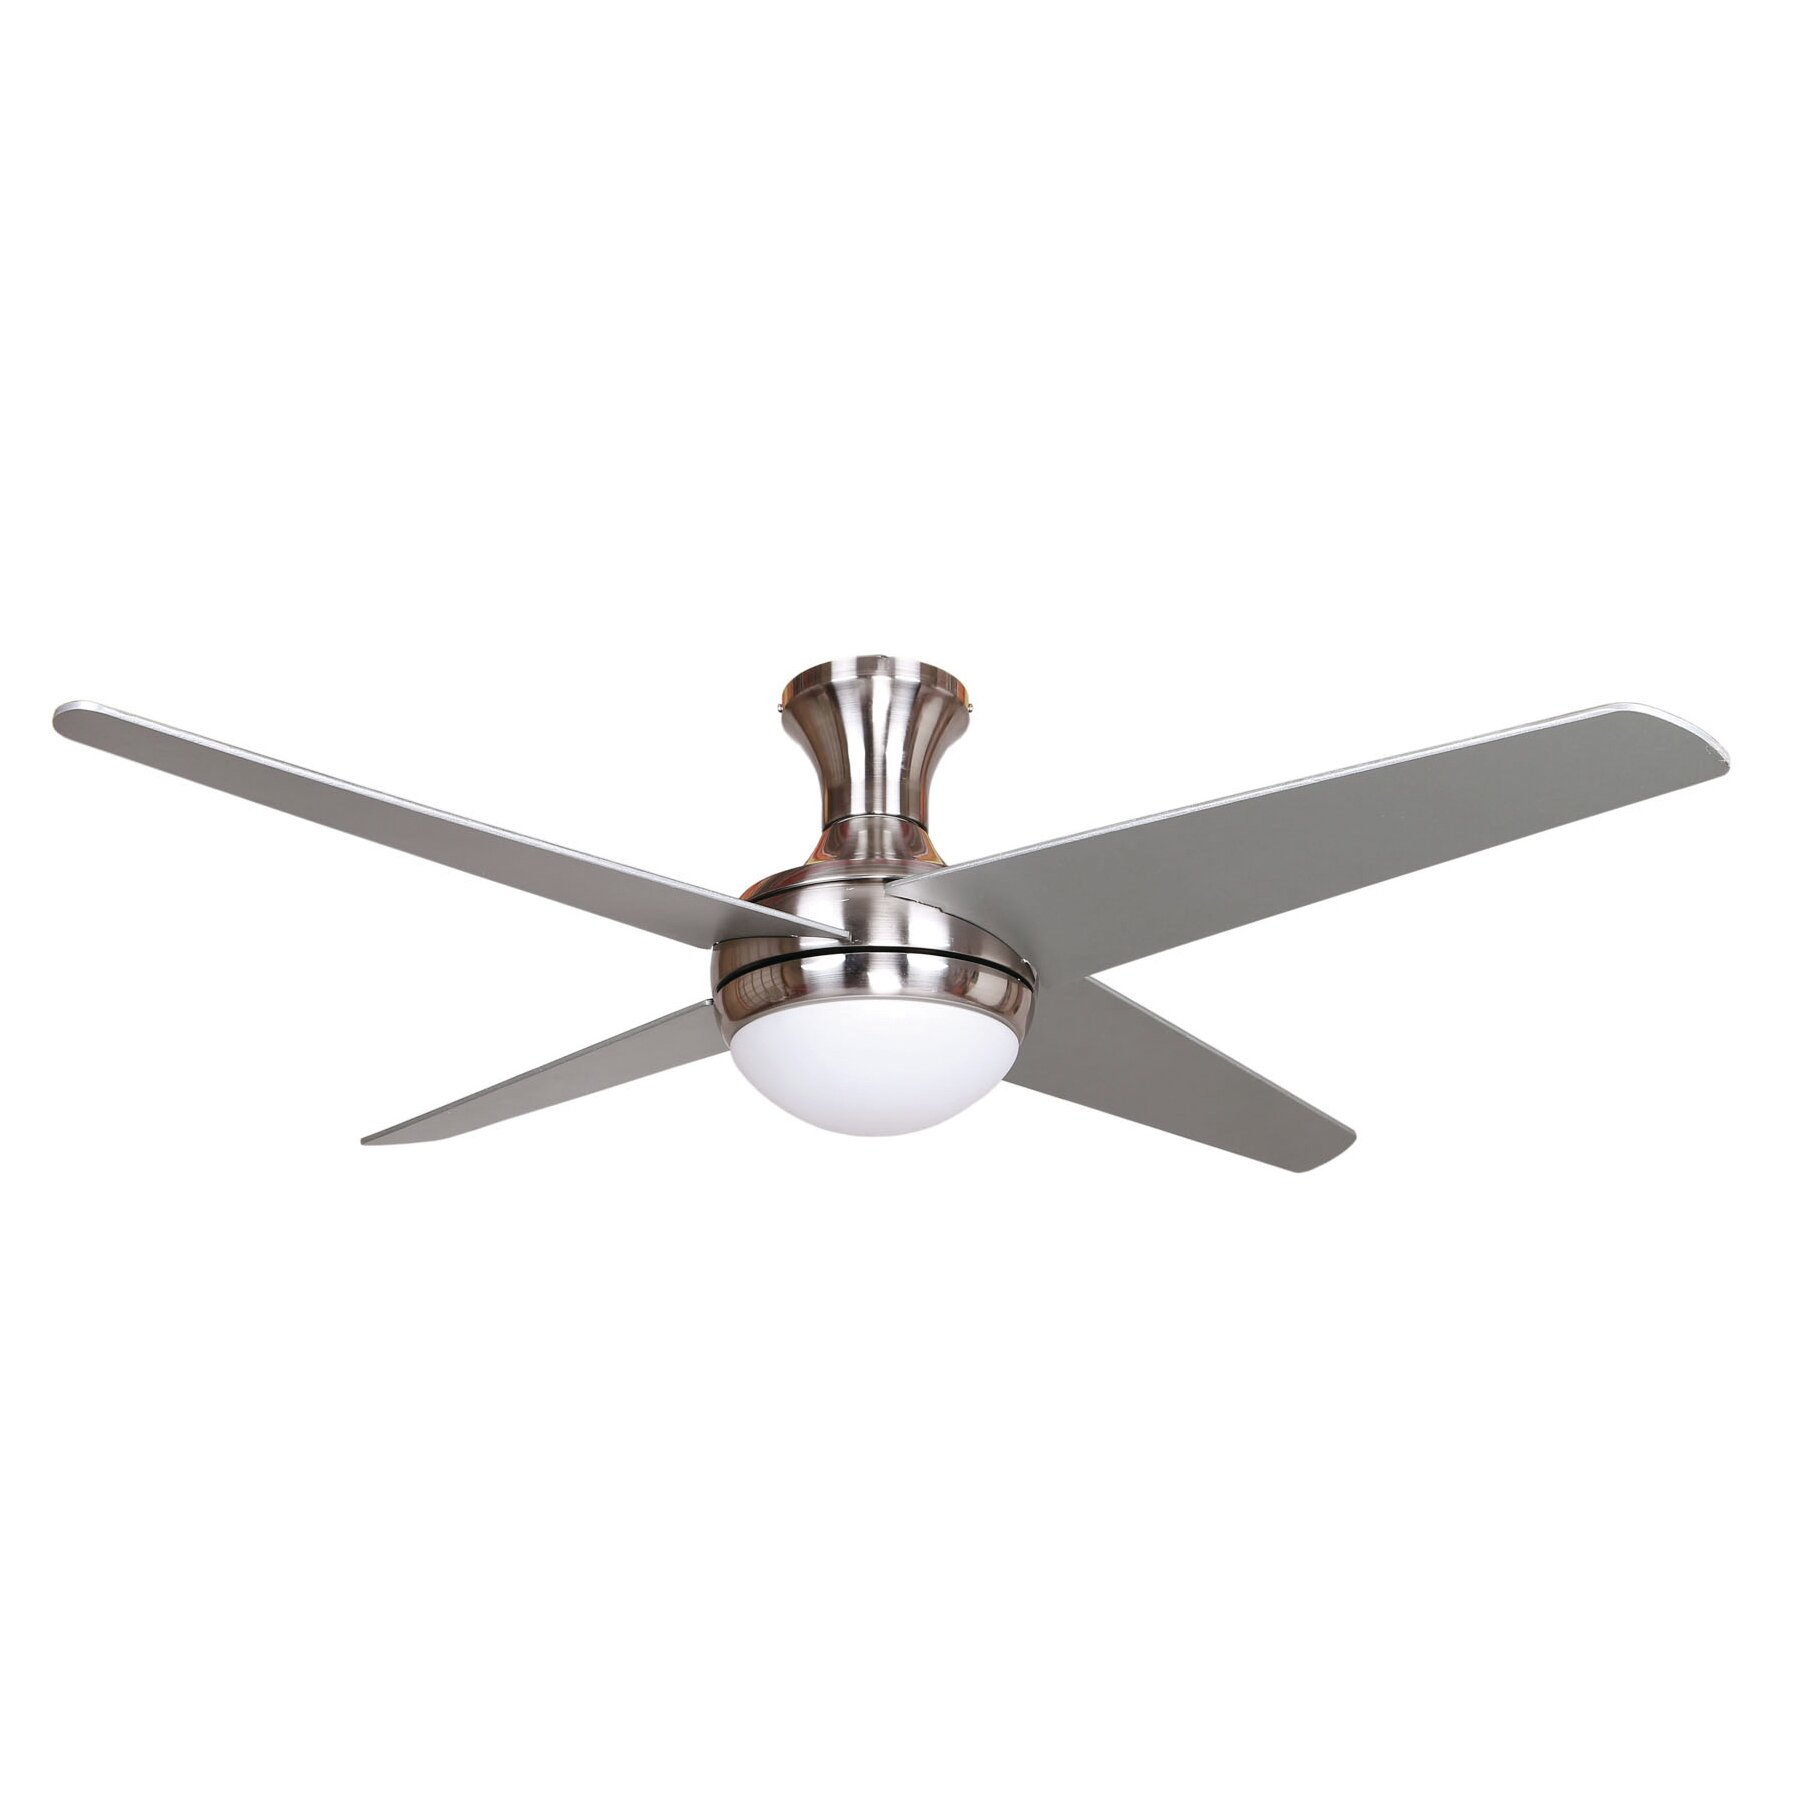 Yosemite Home Decor 52 Taysom 4 Blade Ceiling Fan Reviews Wayfair